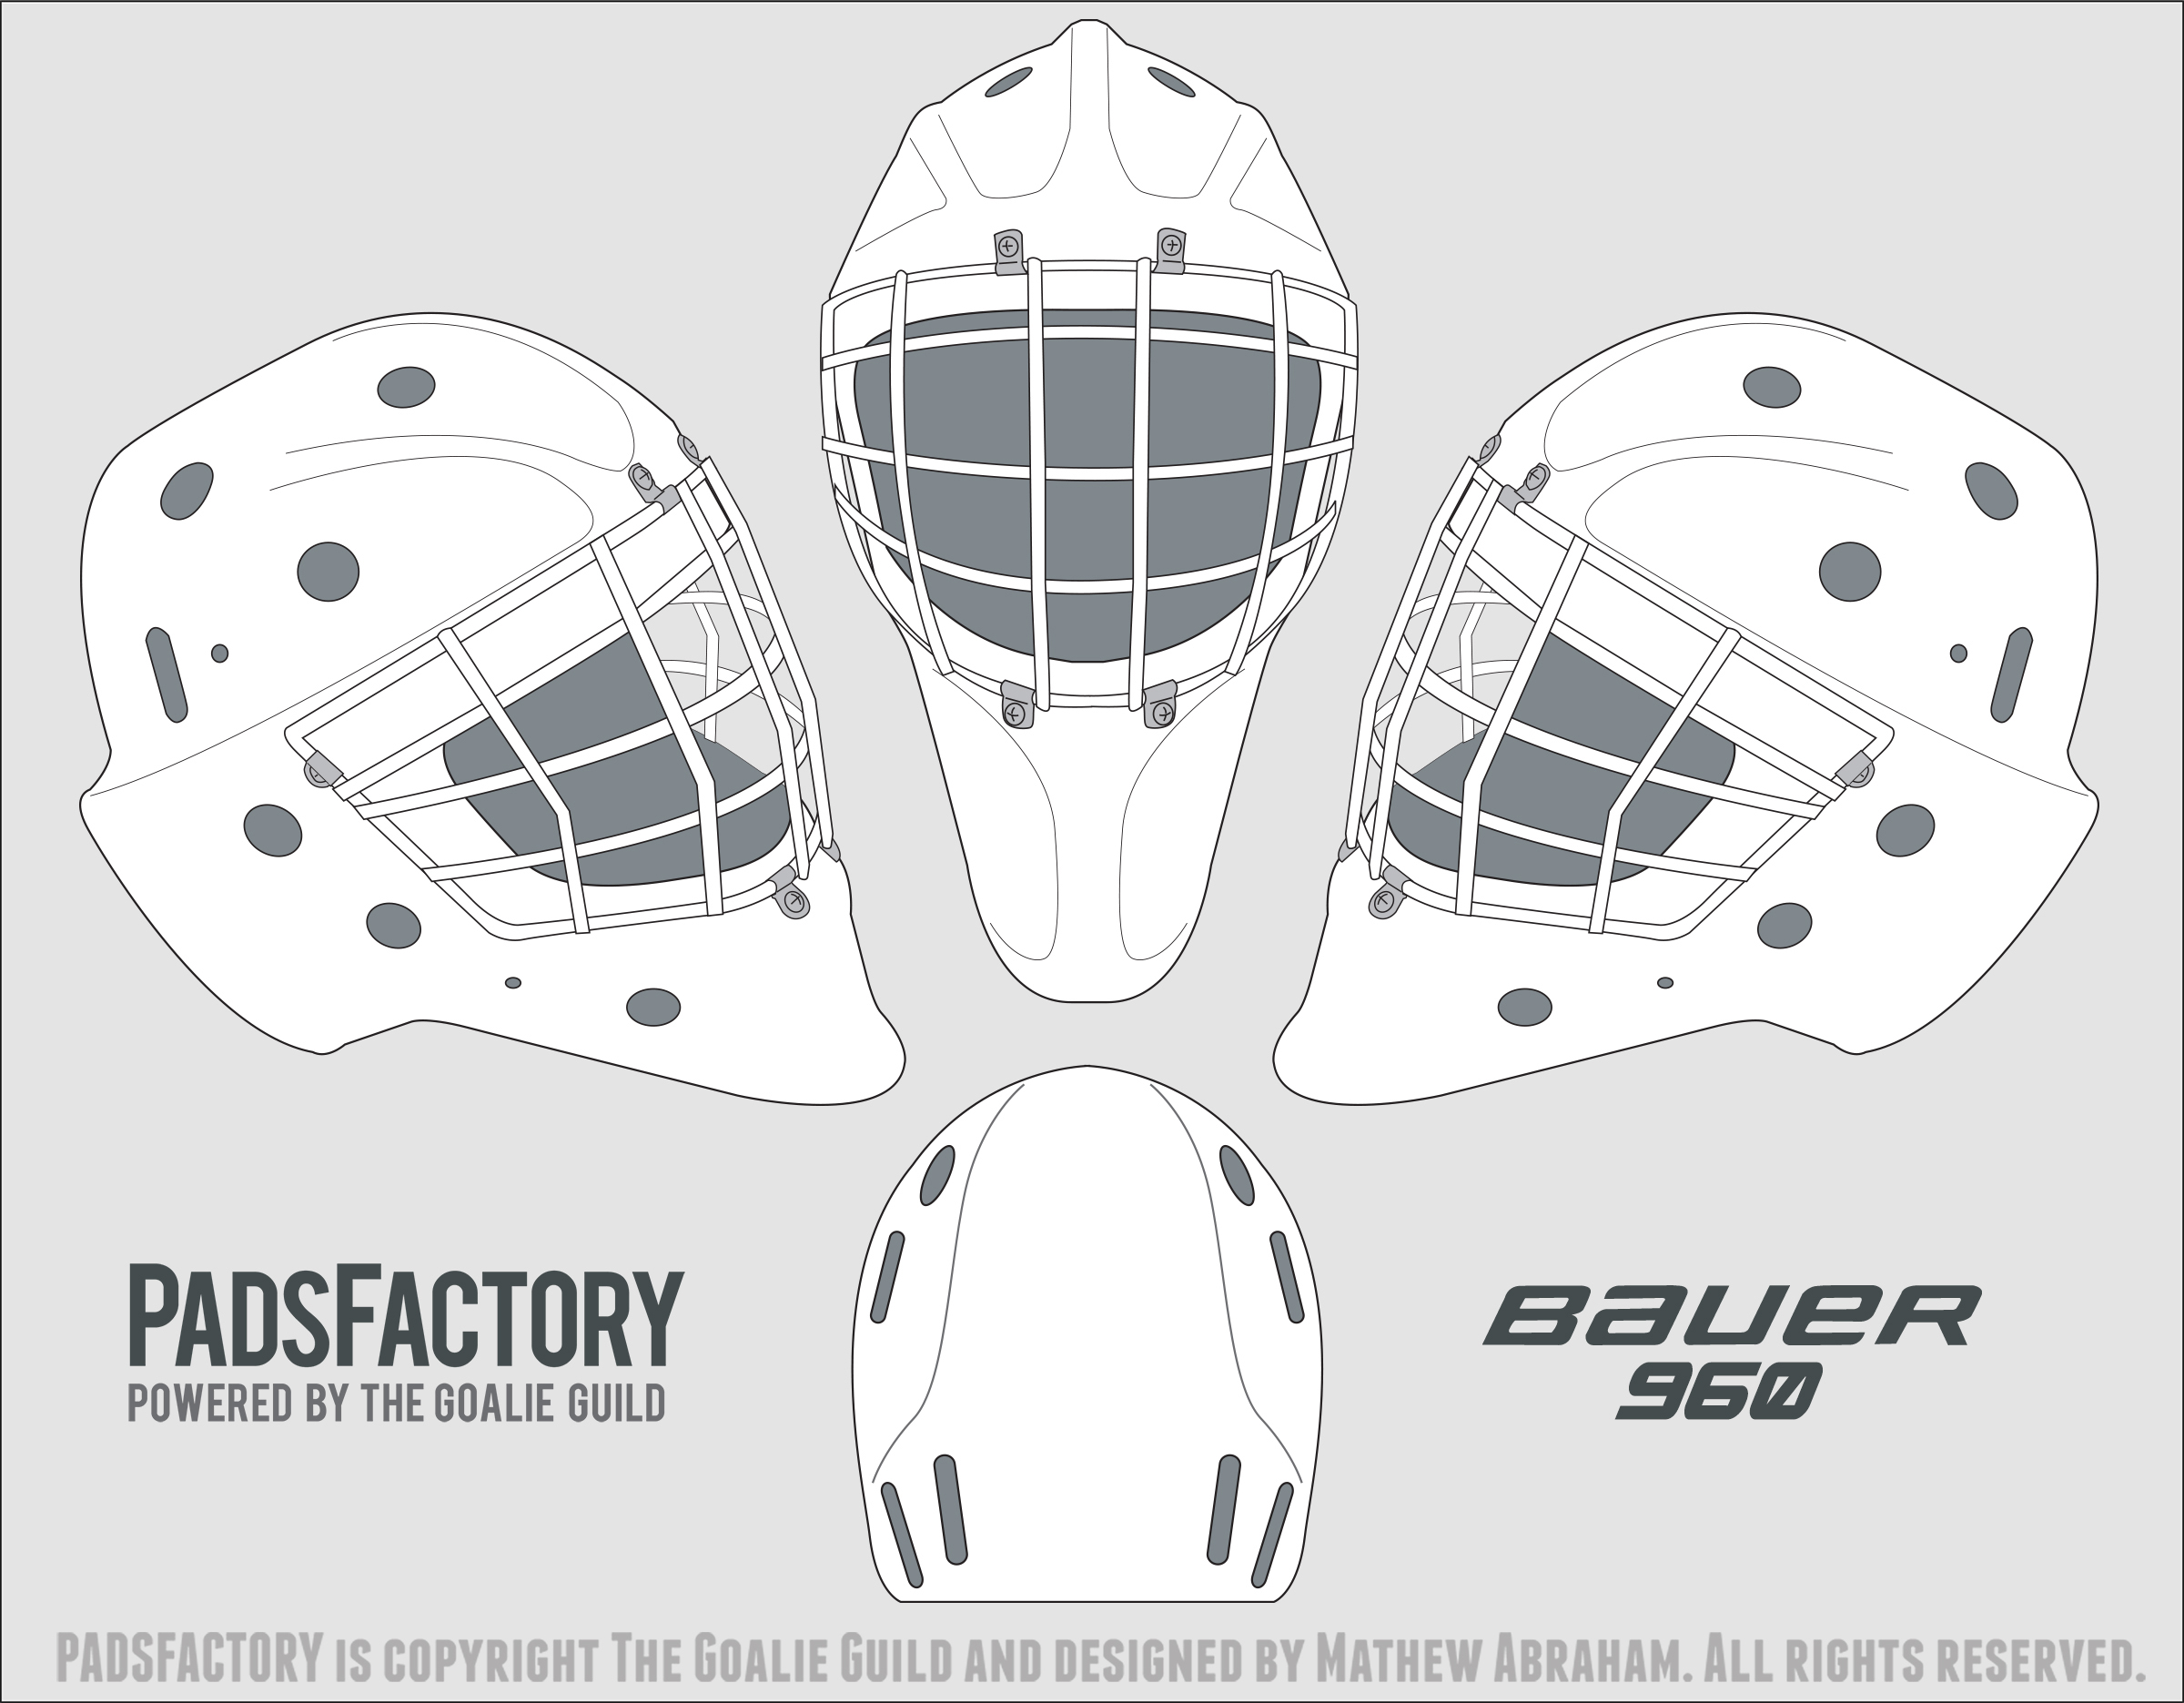 bauer goalie mask template - bauer goalie mask template pictures to pin on pinterest